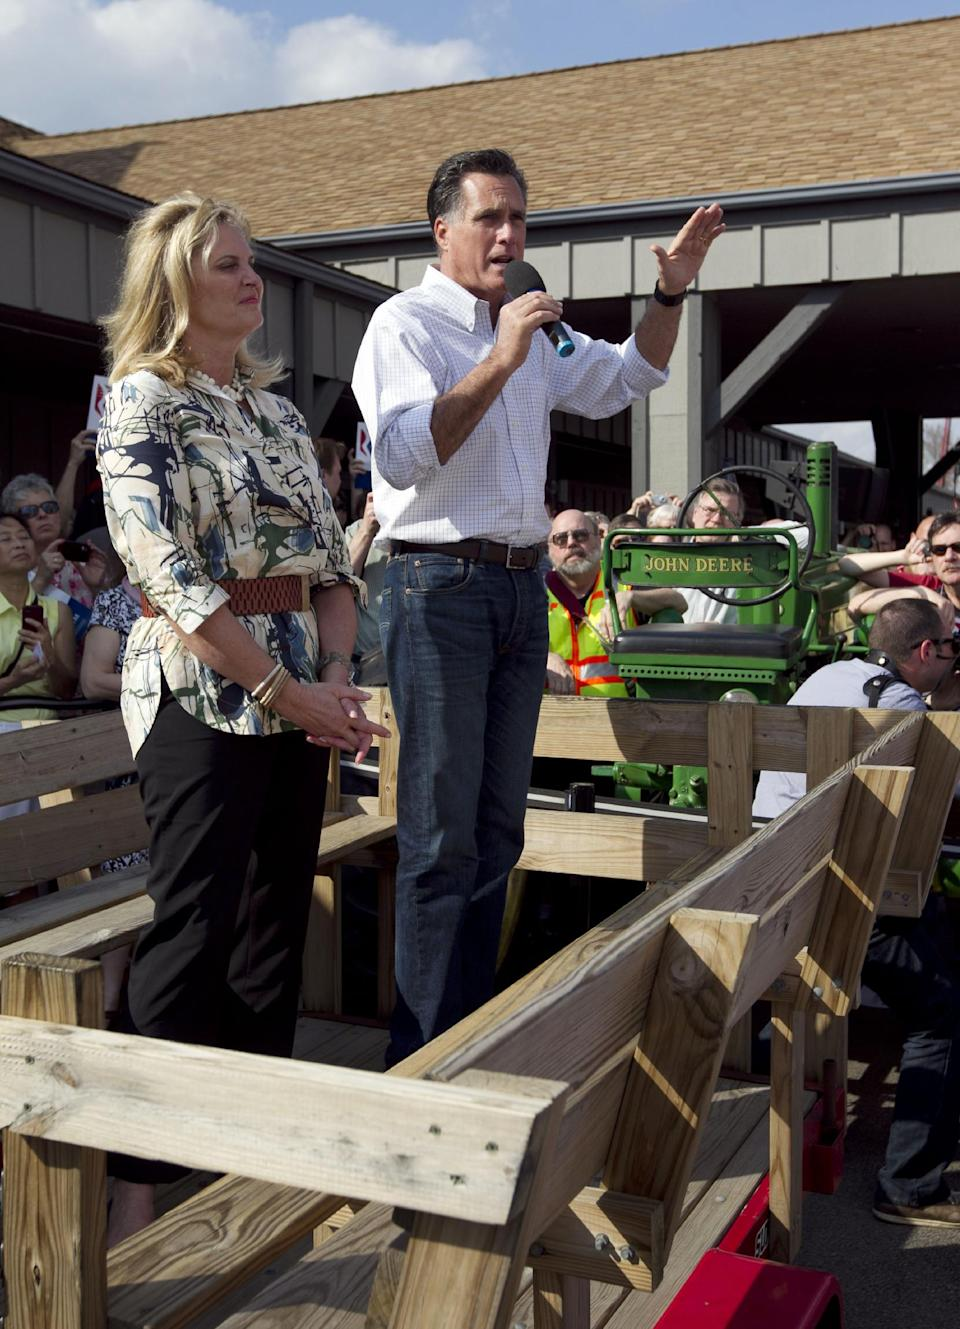 Republican presidential candidate, former Massachusetts Gov. Mitt Romney, right, addresses an audience from a wood wagon as his wife Ann, left, looks on during a campaign stop in Rockford, Ill., Sunday, March 18, 2012. (AP Photo/Steven Senne)